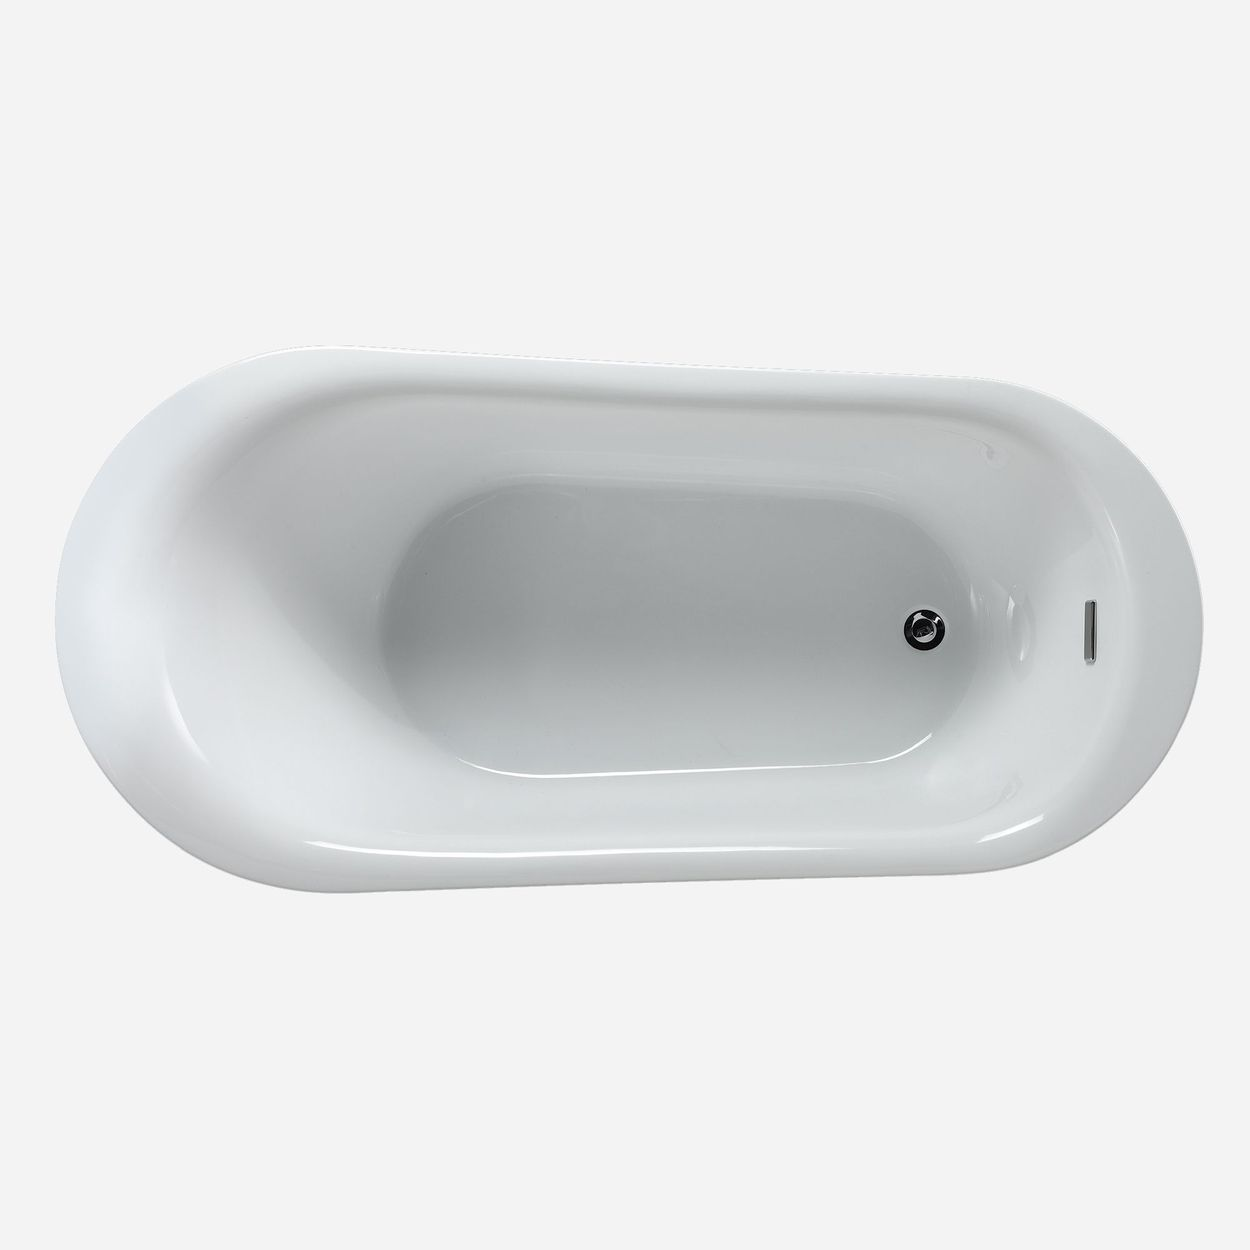 ove decors natalie freestanding tub with athena faucet